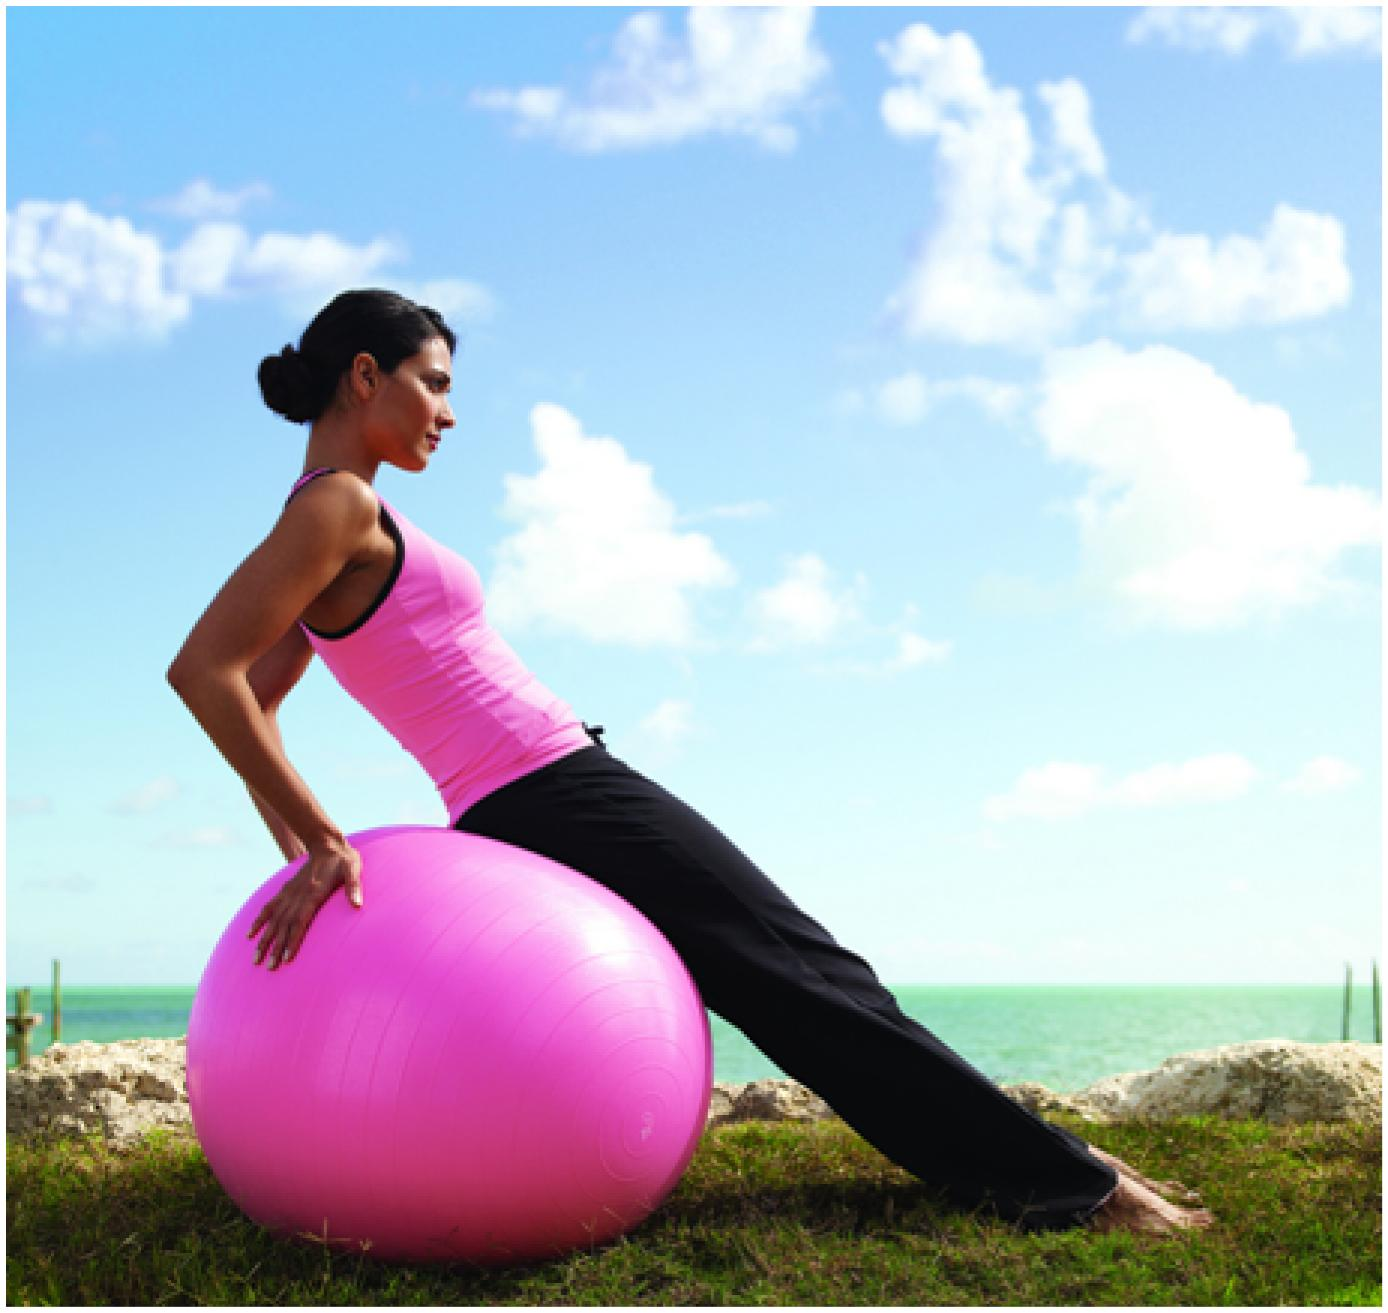 exercising on pink ball